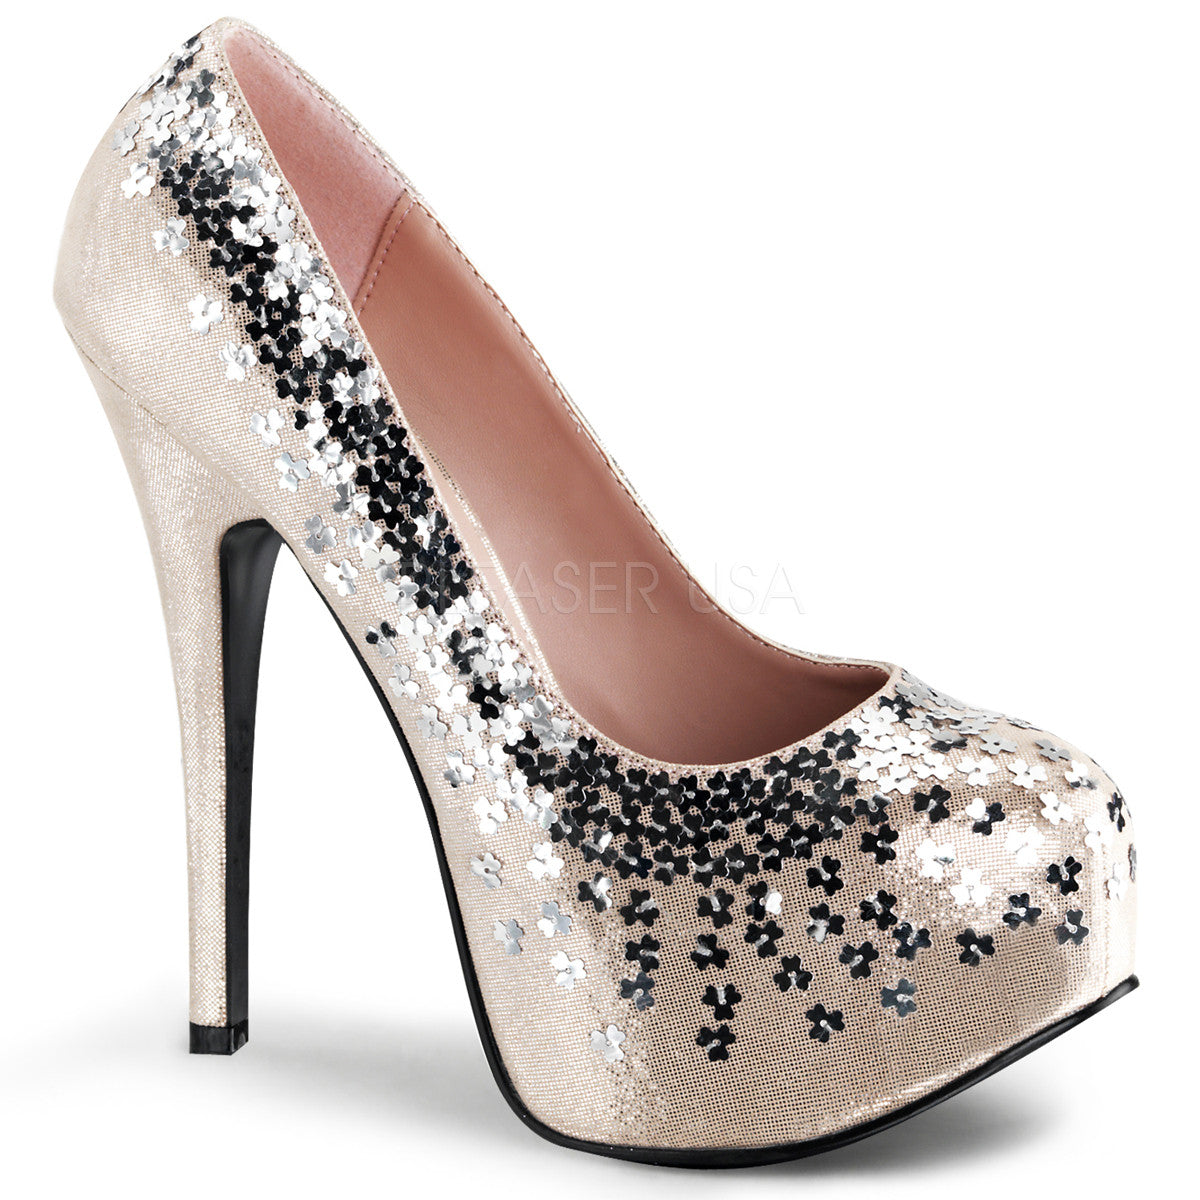 FABULICIOUS TEEZE-06SQ Blush Sequined Metallic Fabric Platform Pumps - Shoecup.com